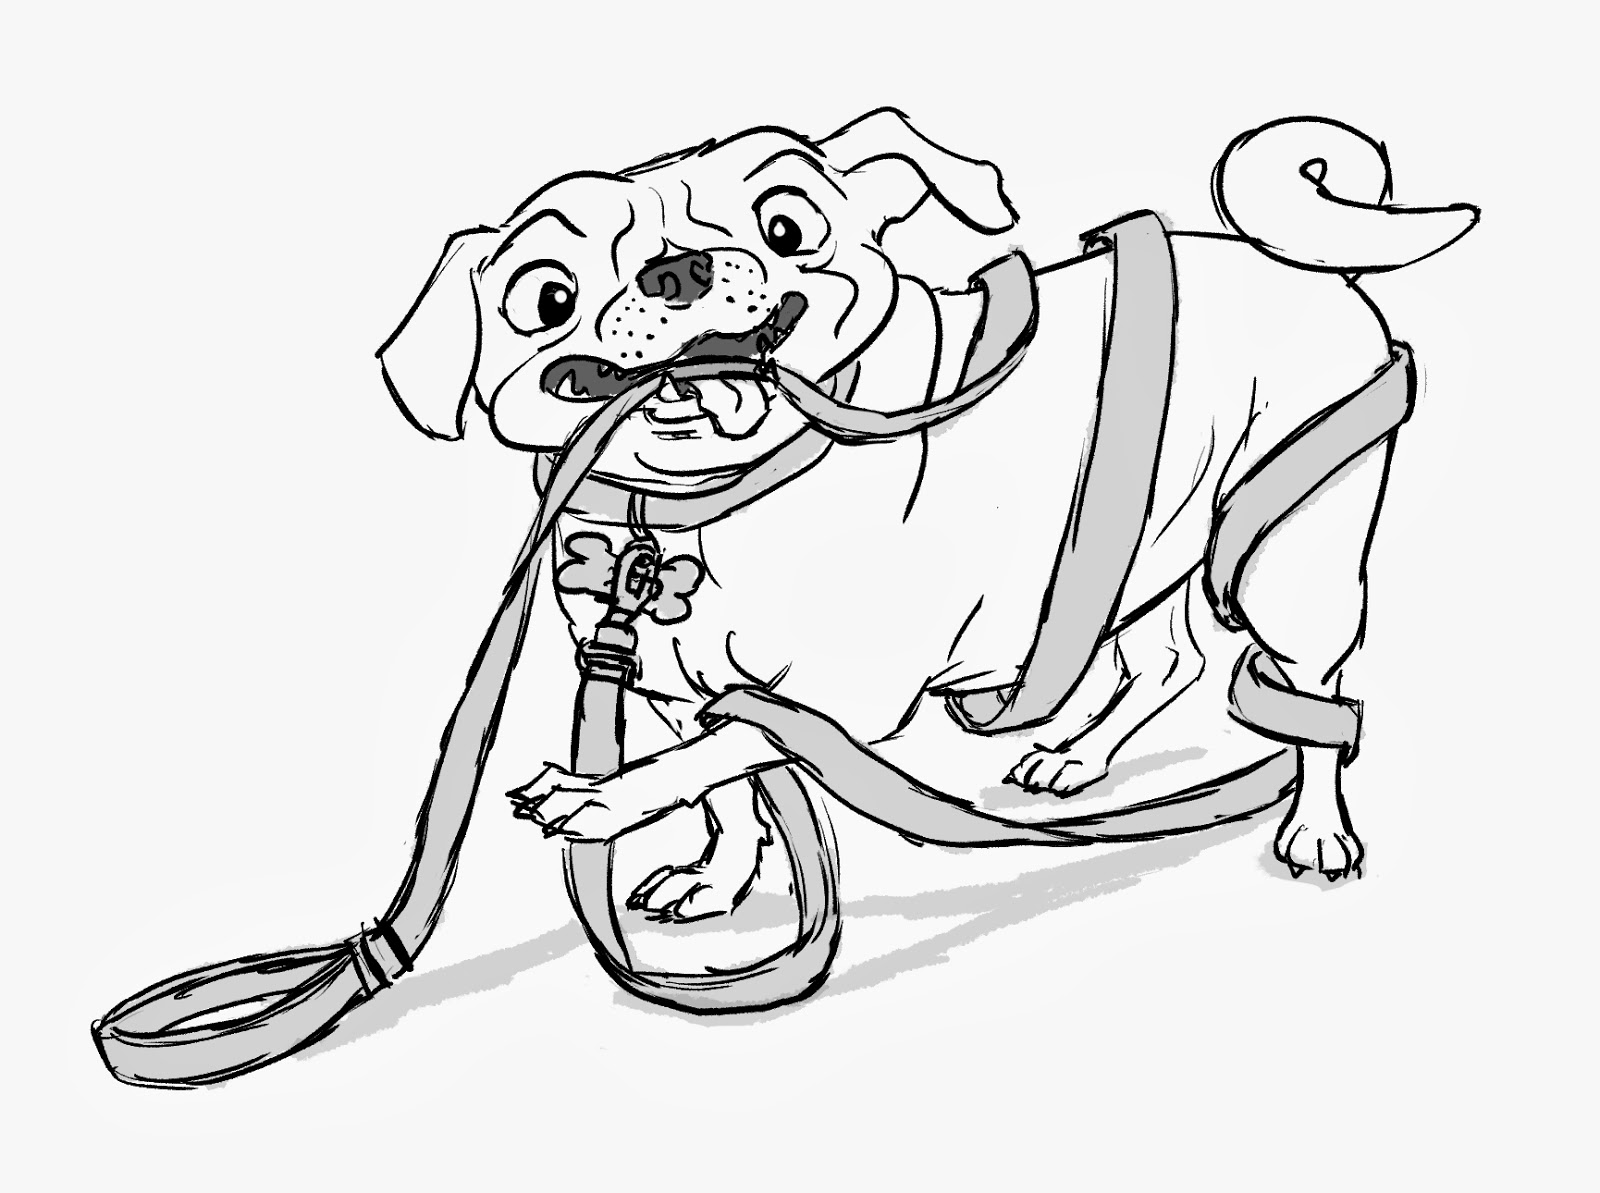 pug puppy coloring pages pug line drawing at getdrawings free download coloring puppy pug pages